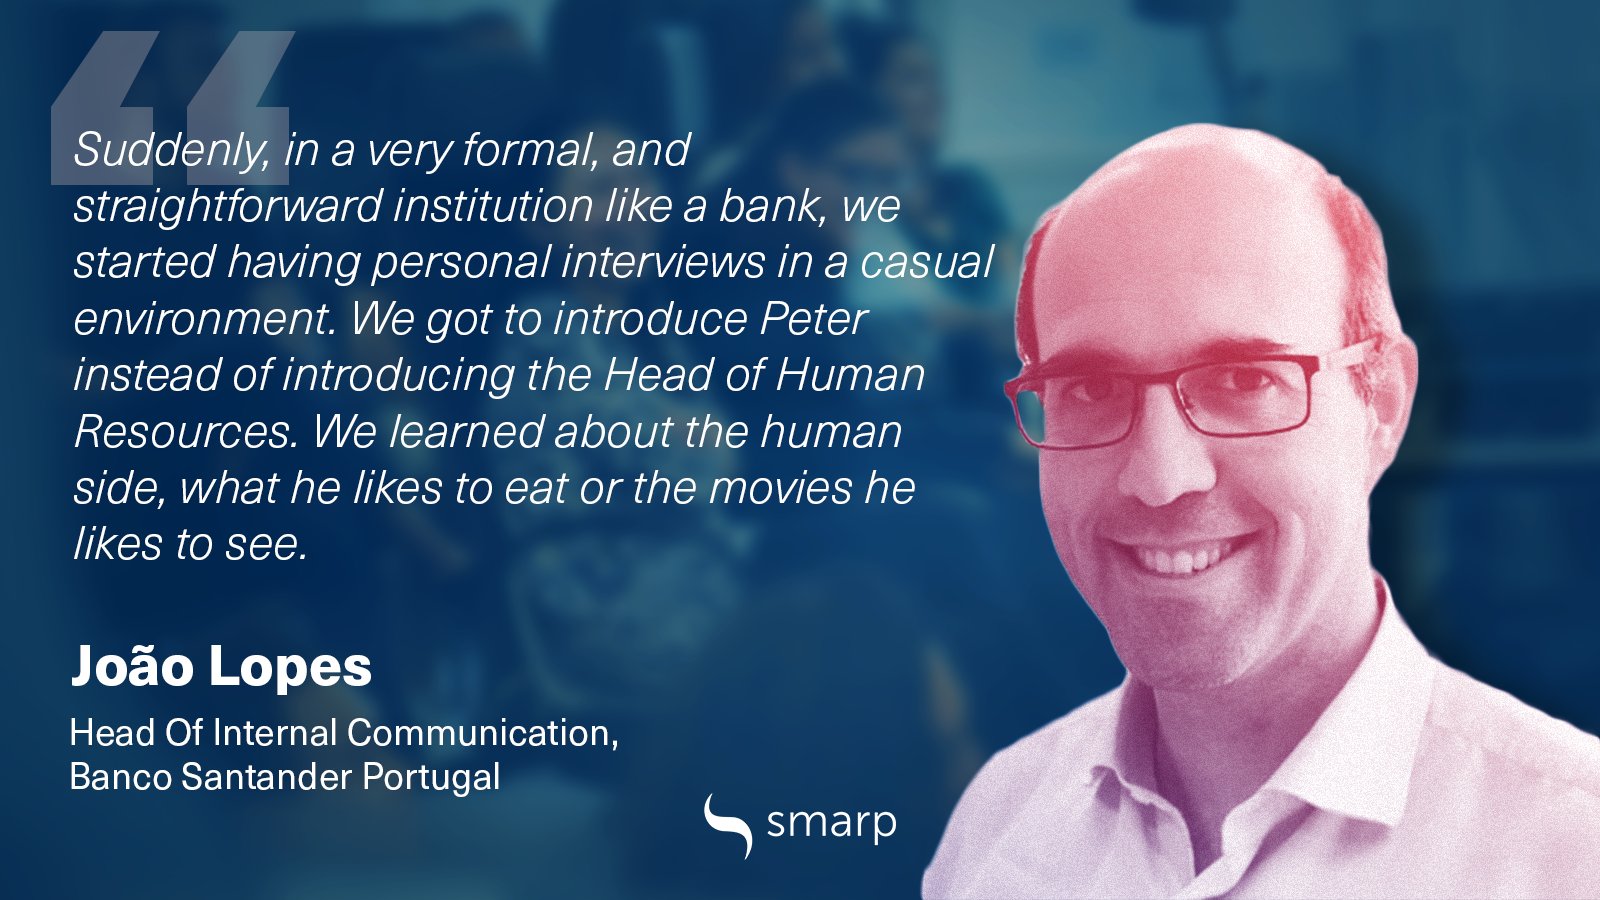 Joao Lopes, Smarp, Banco Santader Portugal, Internal Communication